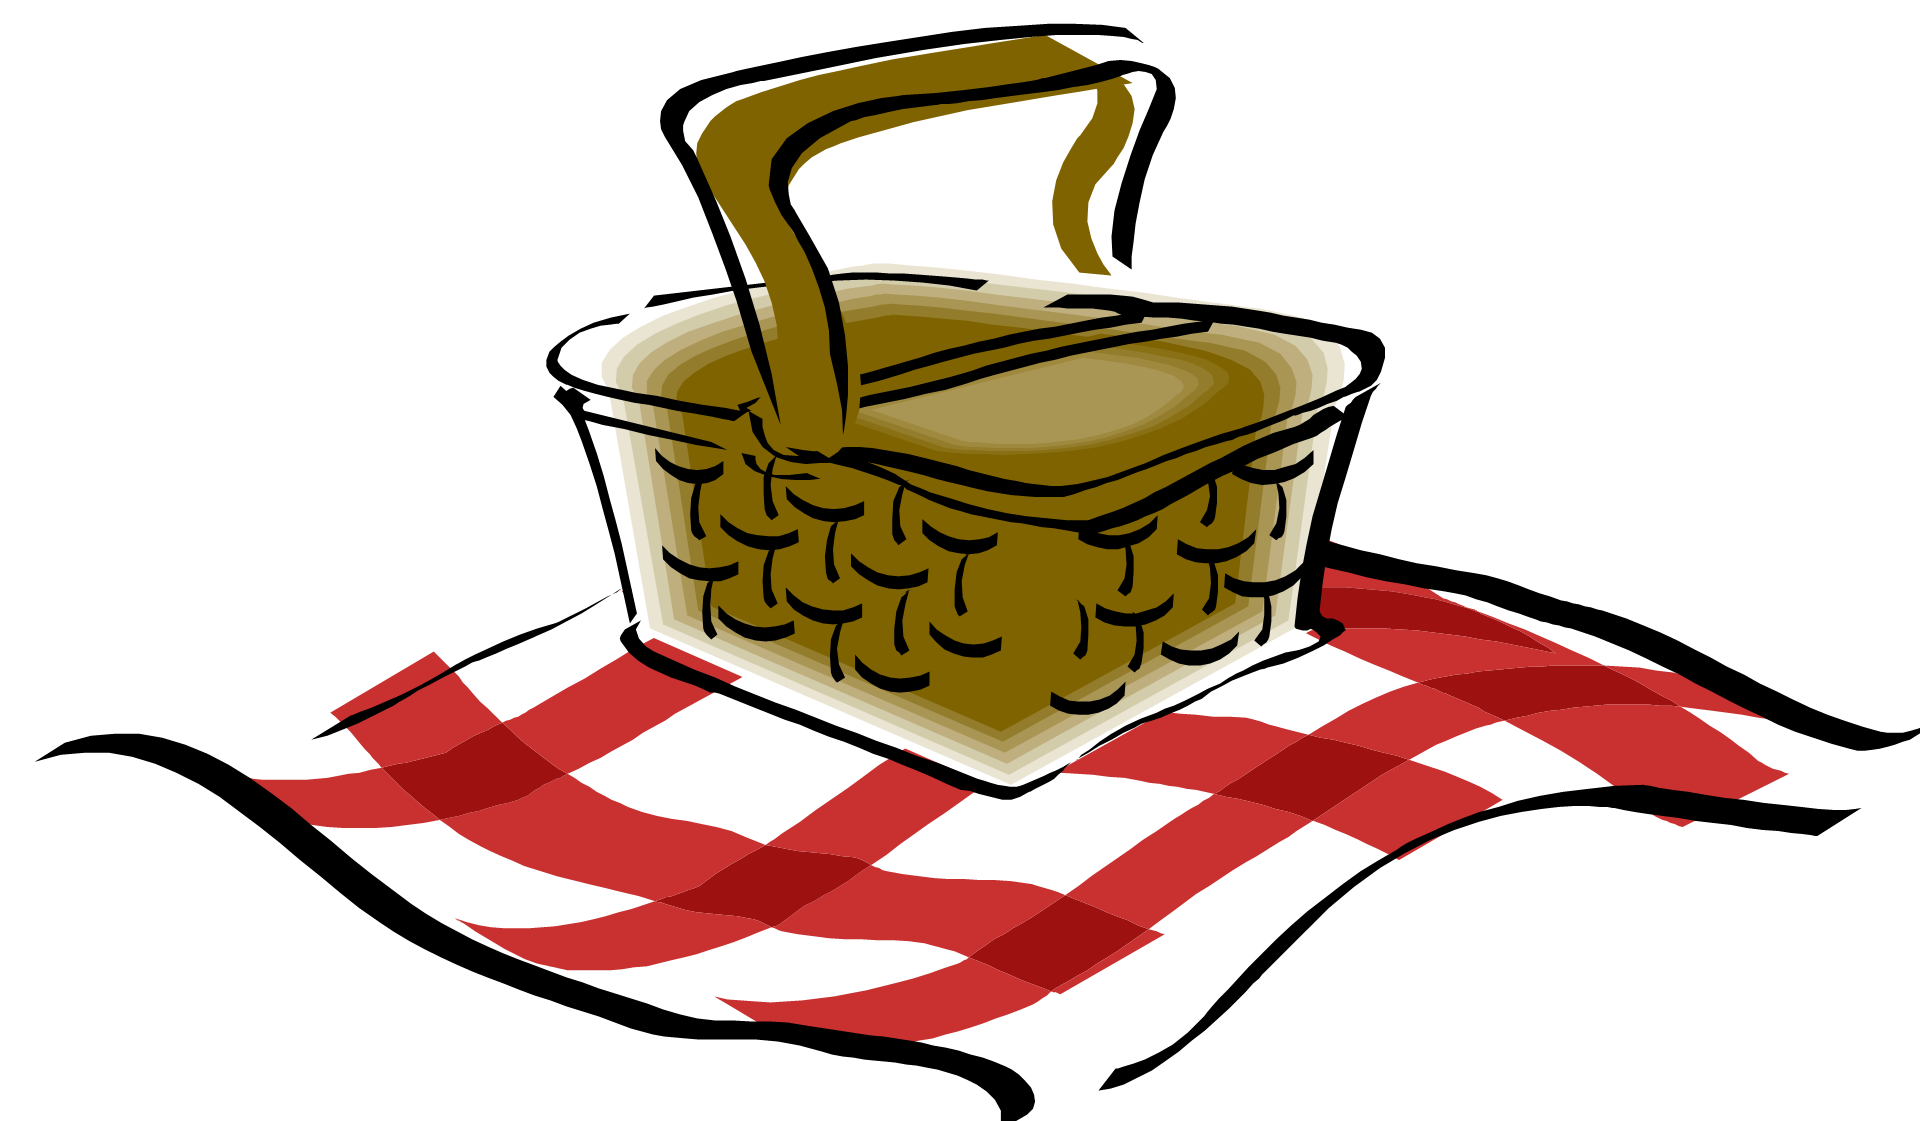 Cartoon Picnic Basket Png-Cartoon Picnic Basket Png-0